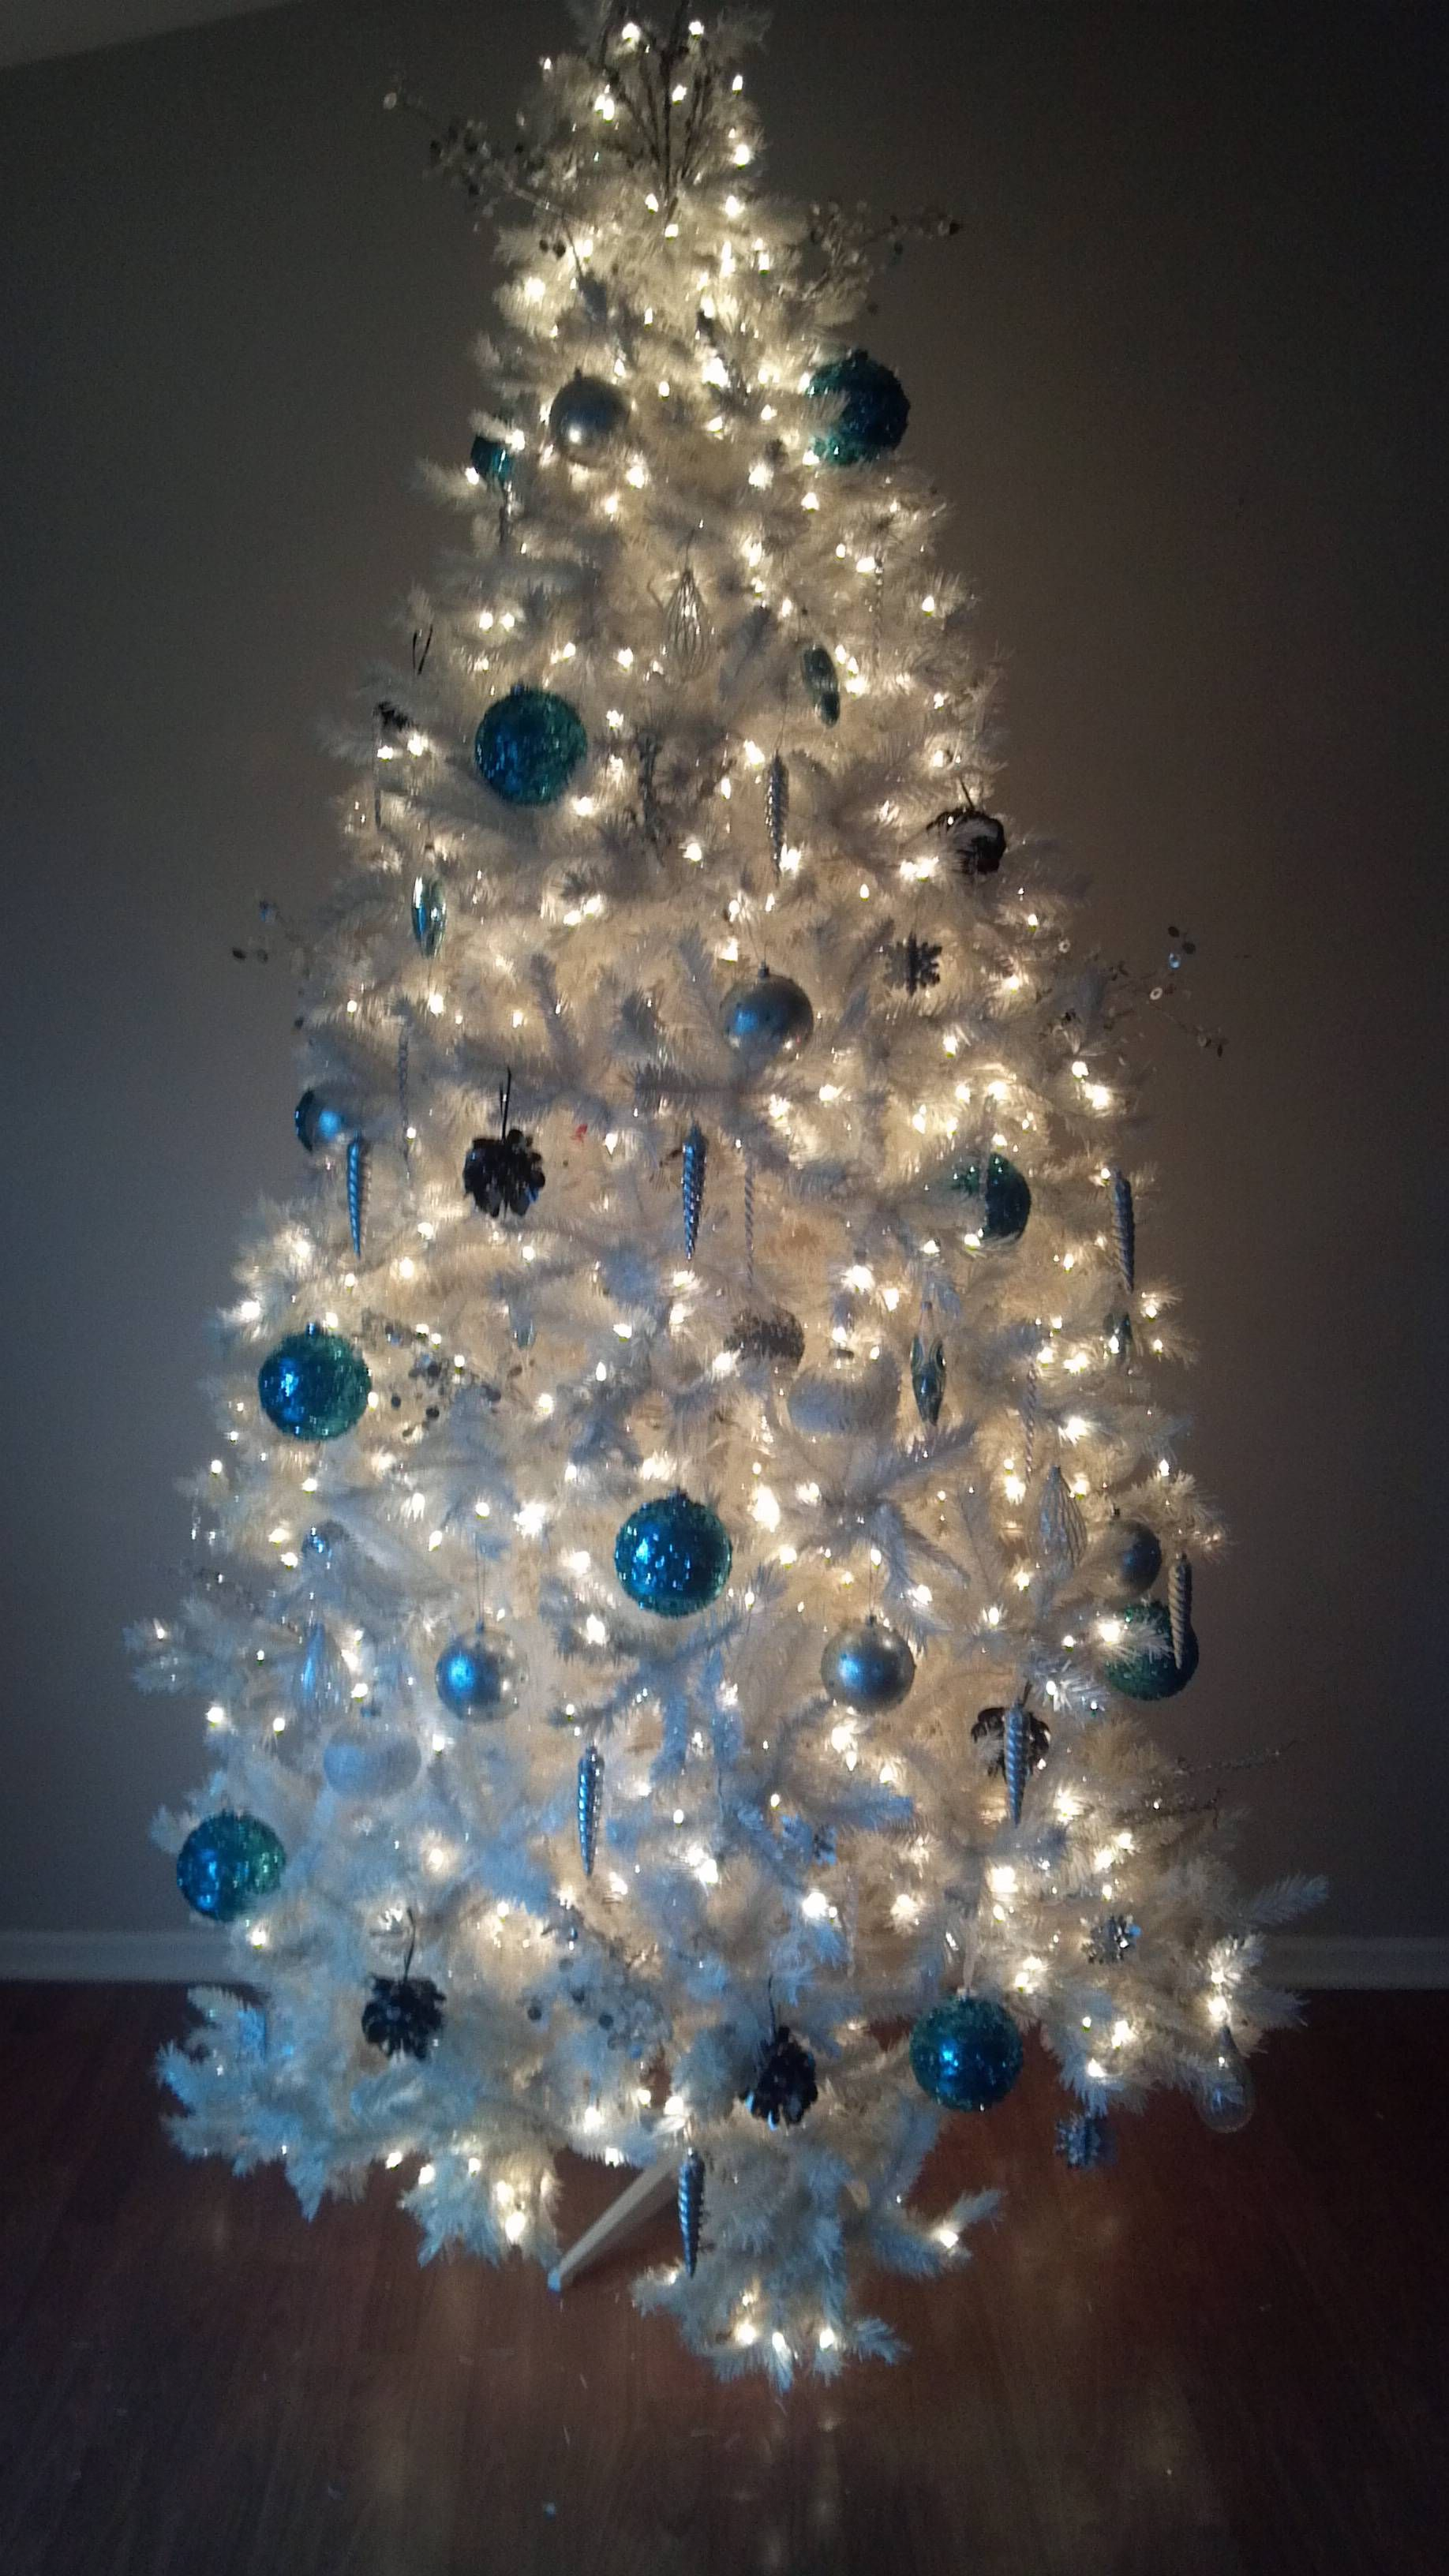 White Christmas Tree With Blue Ornaments